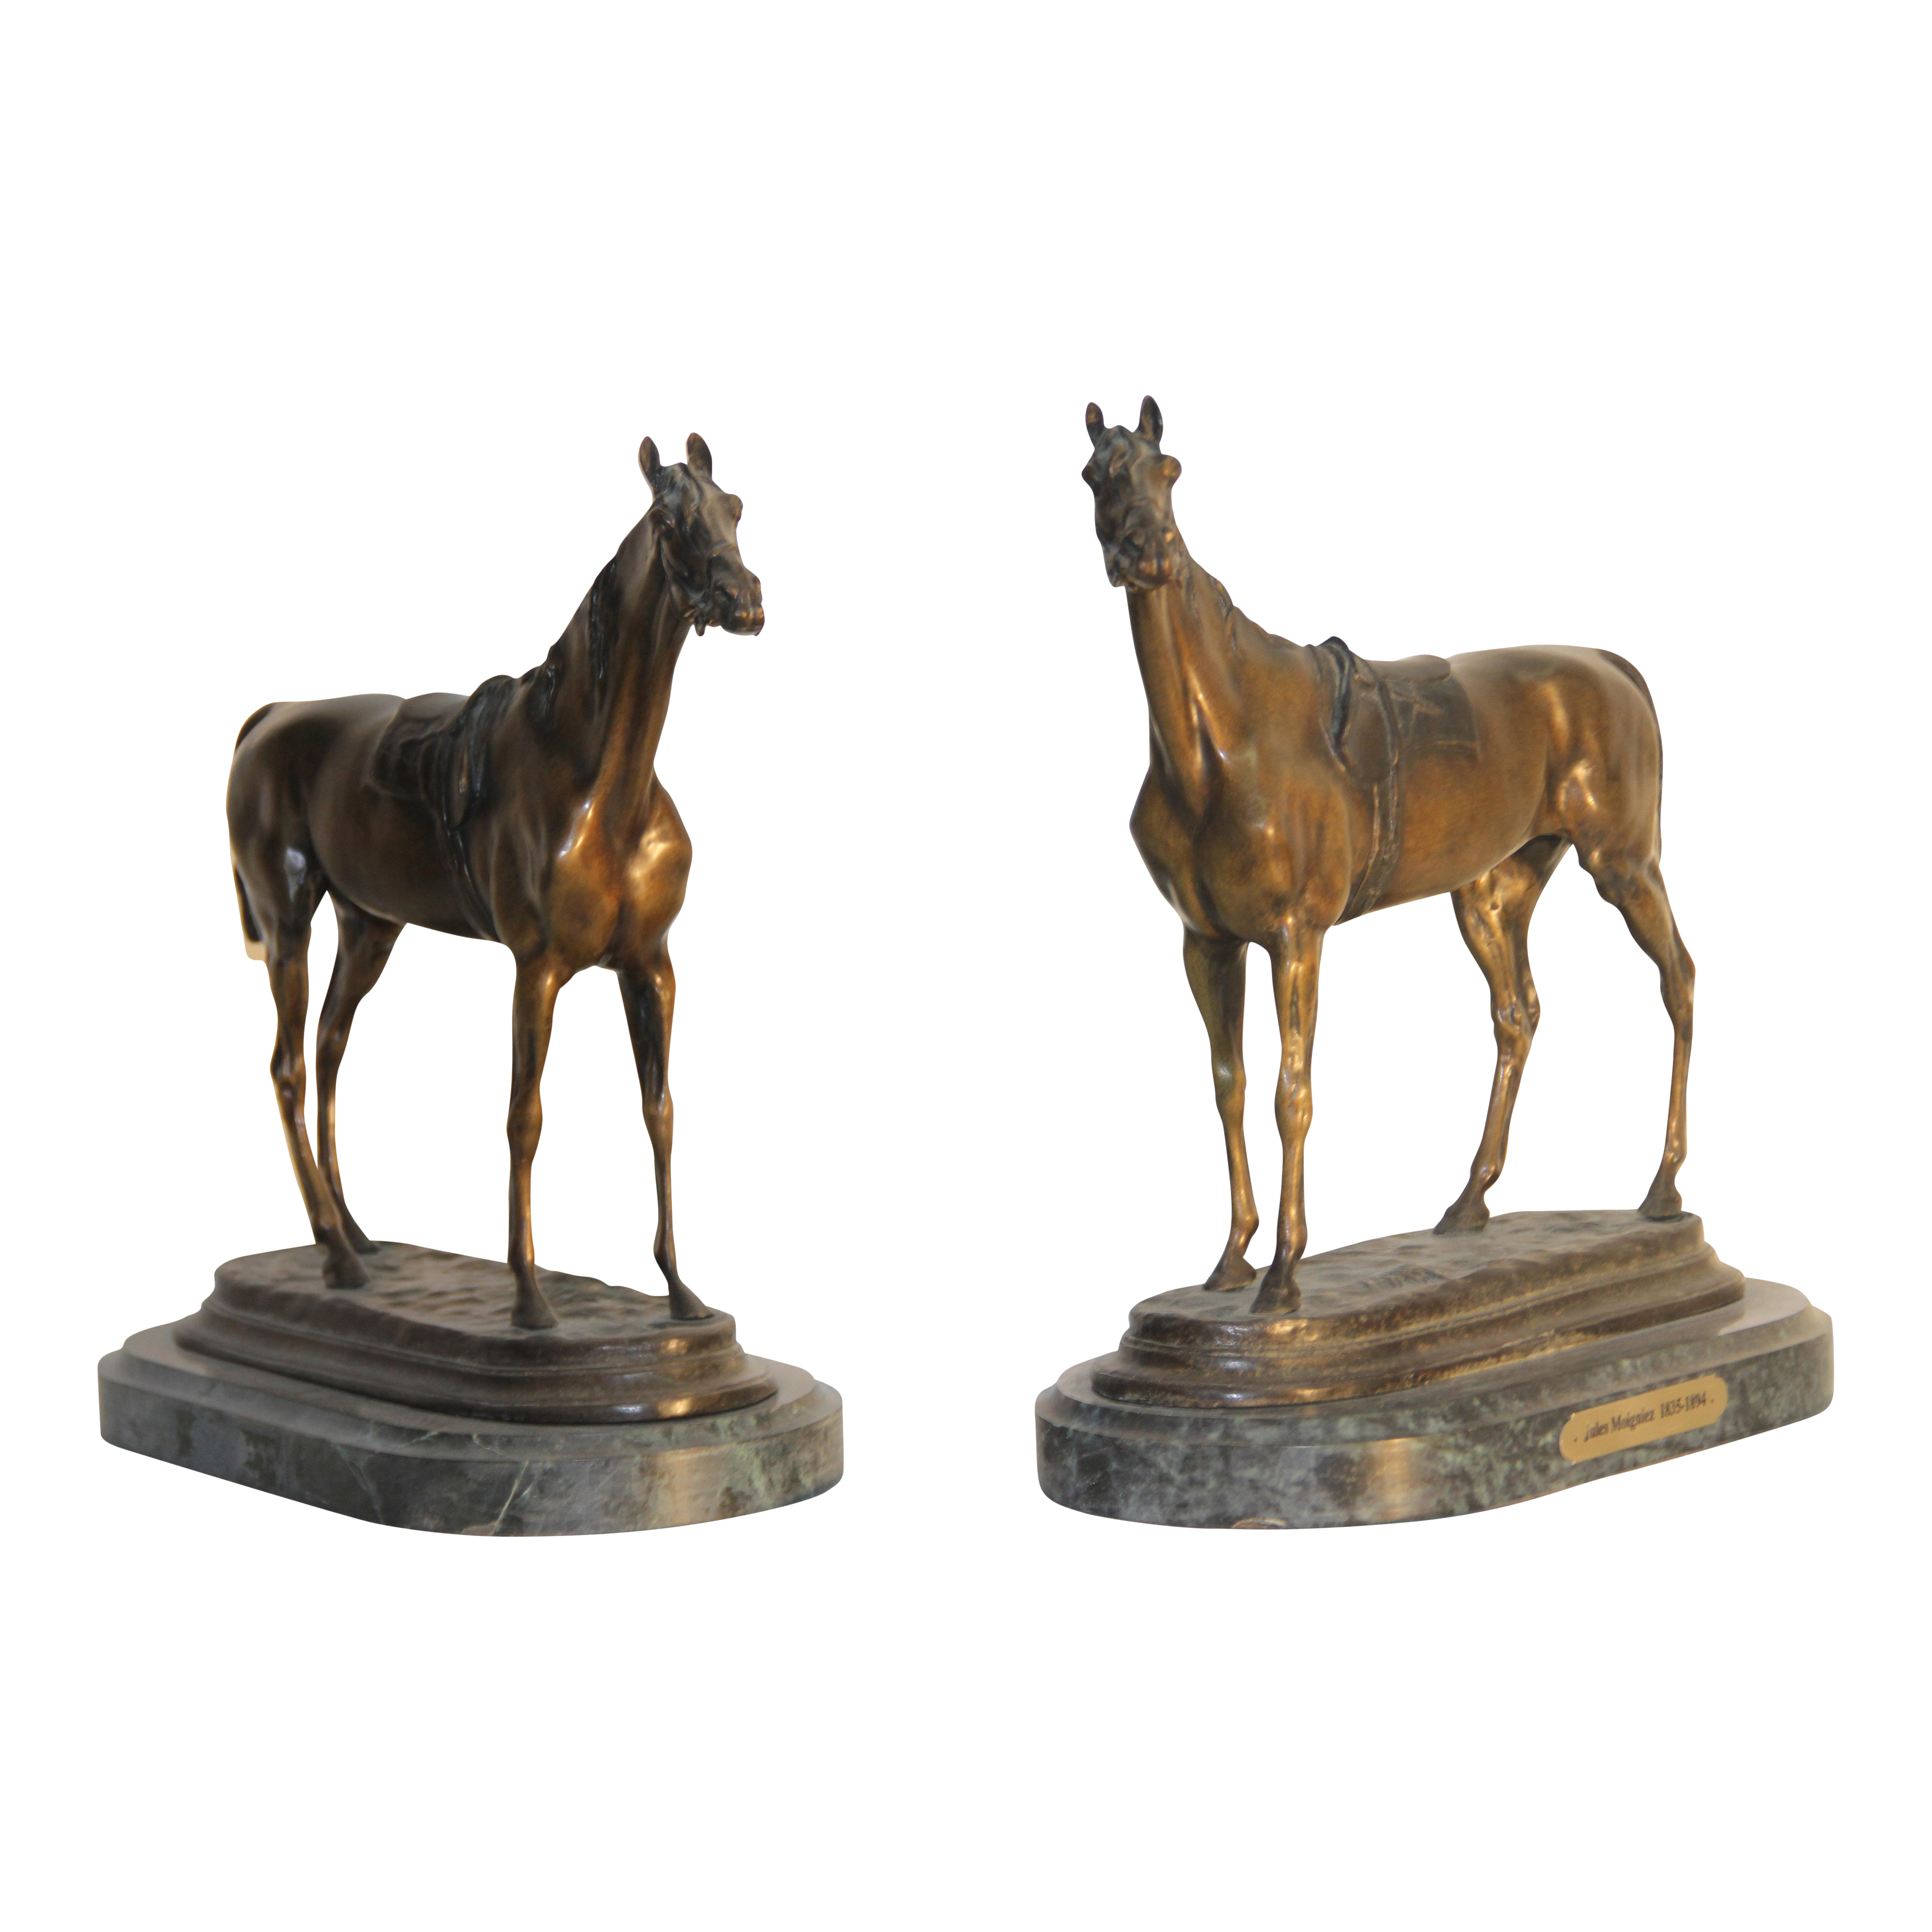 Oval statue base png. Bronze horses on marble